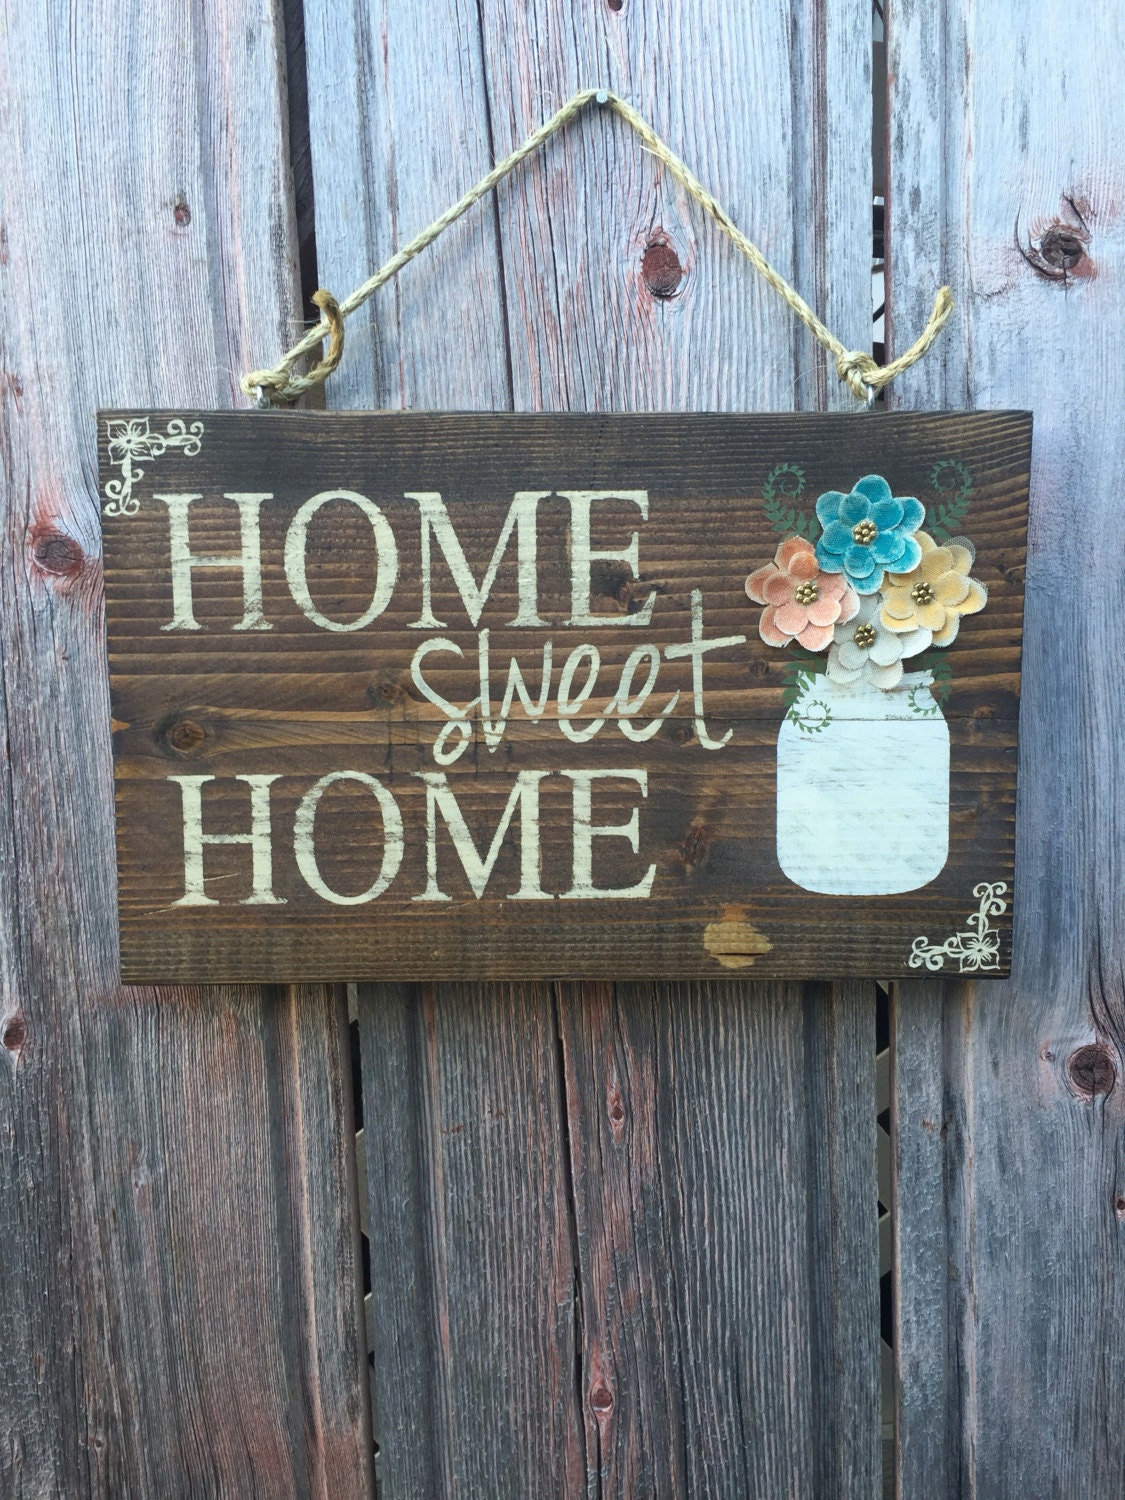 Home Sweet Home Outdoor Painted Mason Jar Wood Signs Front. Eyelid Dermatitis Signs. Pavement Signs. Ship Signs Of Stroke. Self Harm Signs. Wind Signs. Eyelid Dermatitis Signs Of Stroke. Skin Mets Signs. Heartbroken Signs